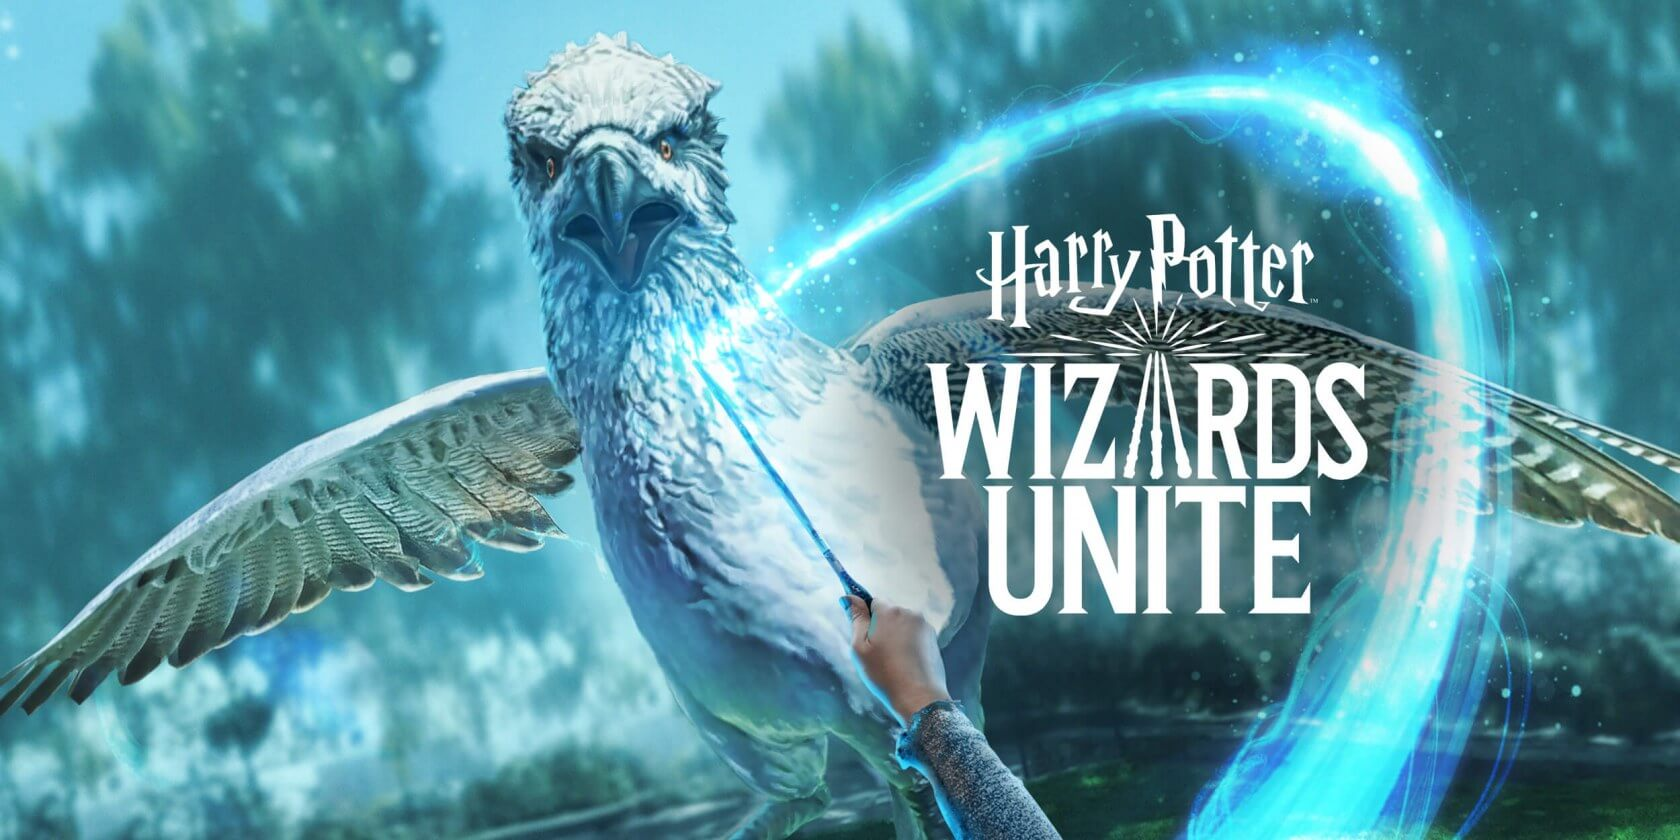 Pokémon Go-like mobile AR title 'Harry Potter: Wizards Unite' launches on iOS and Android